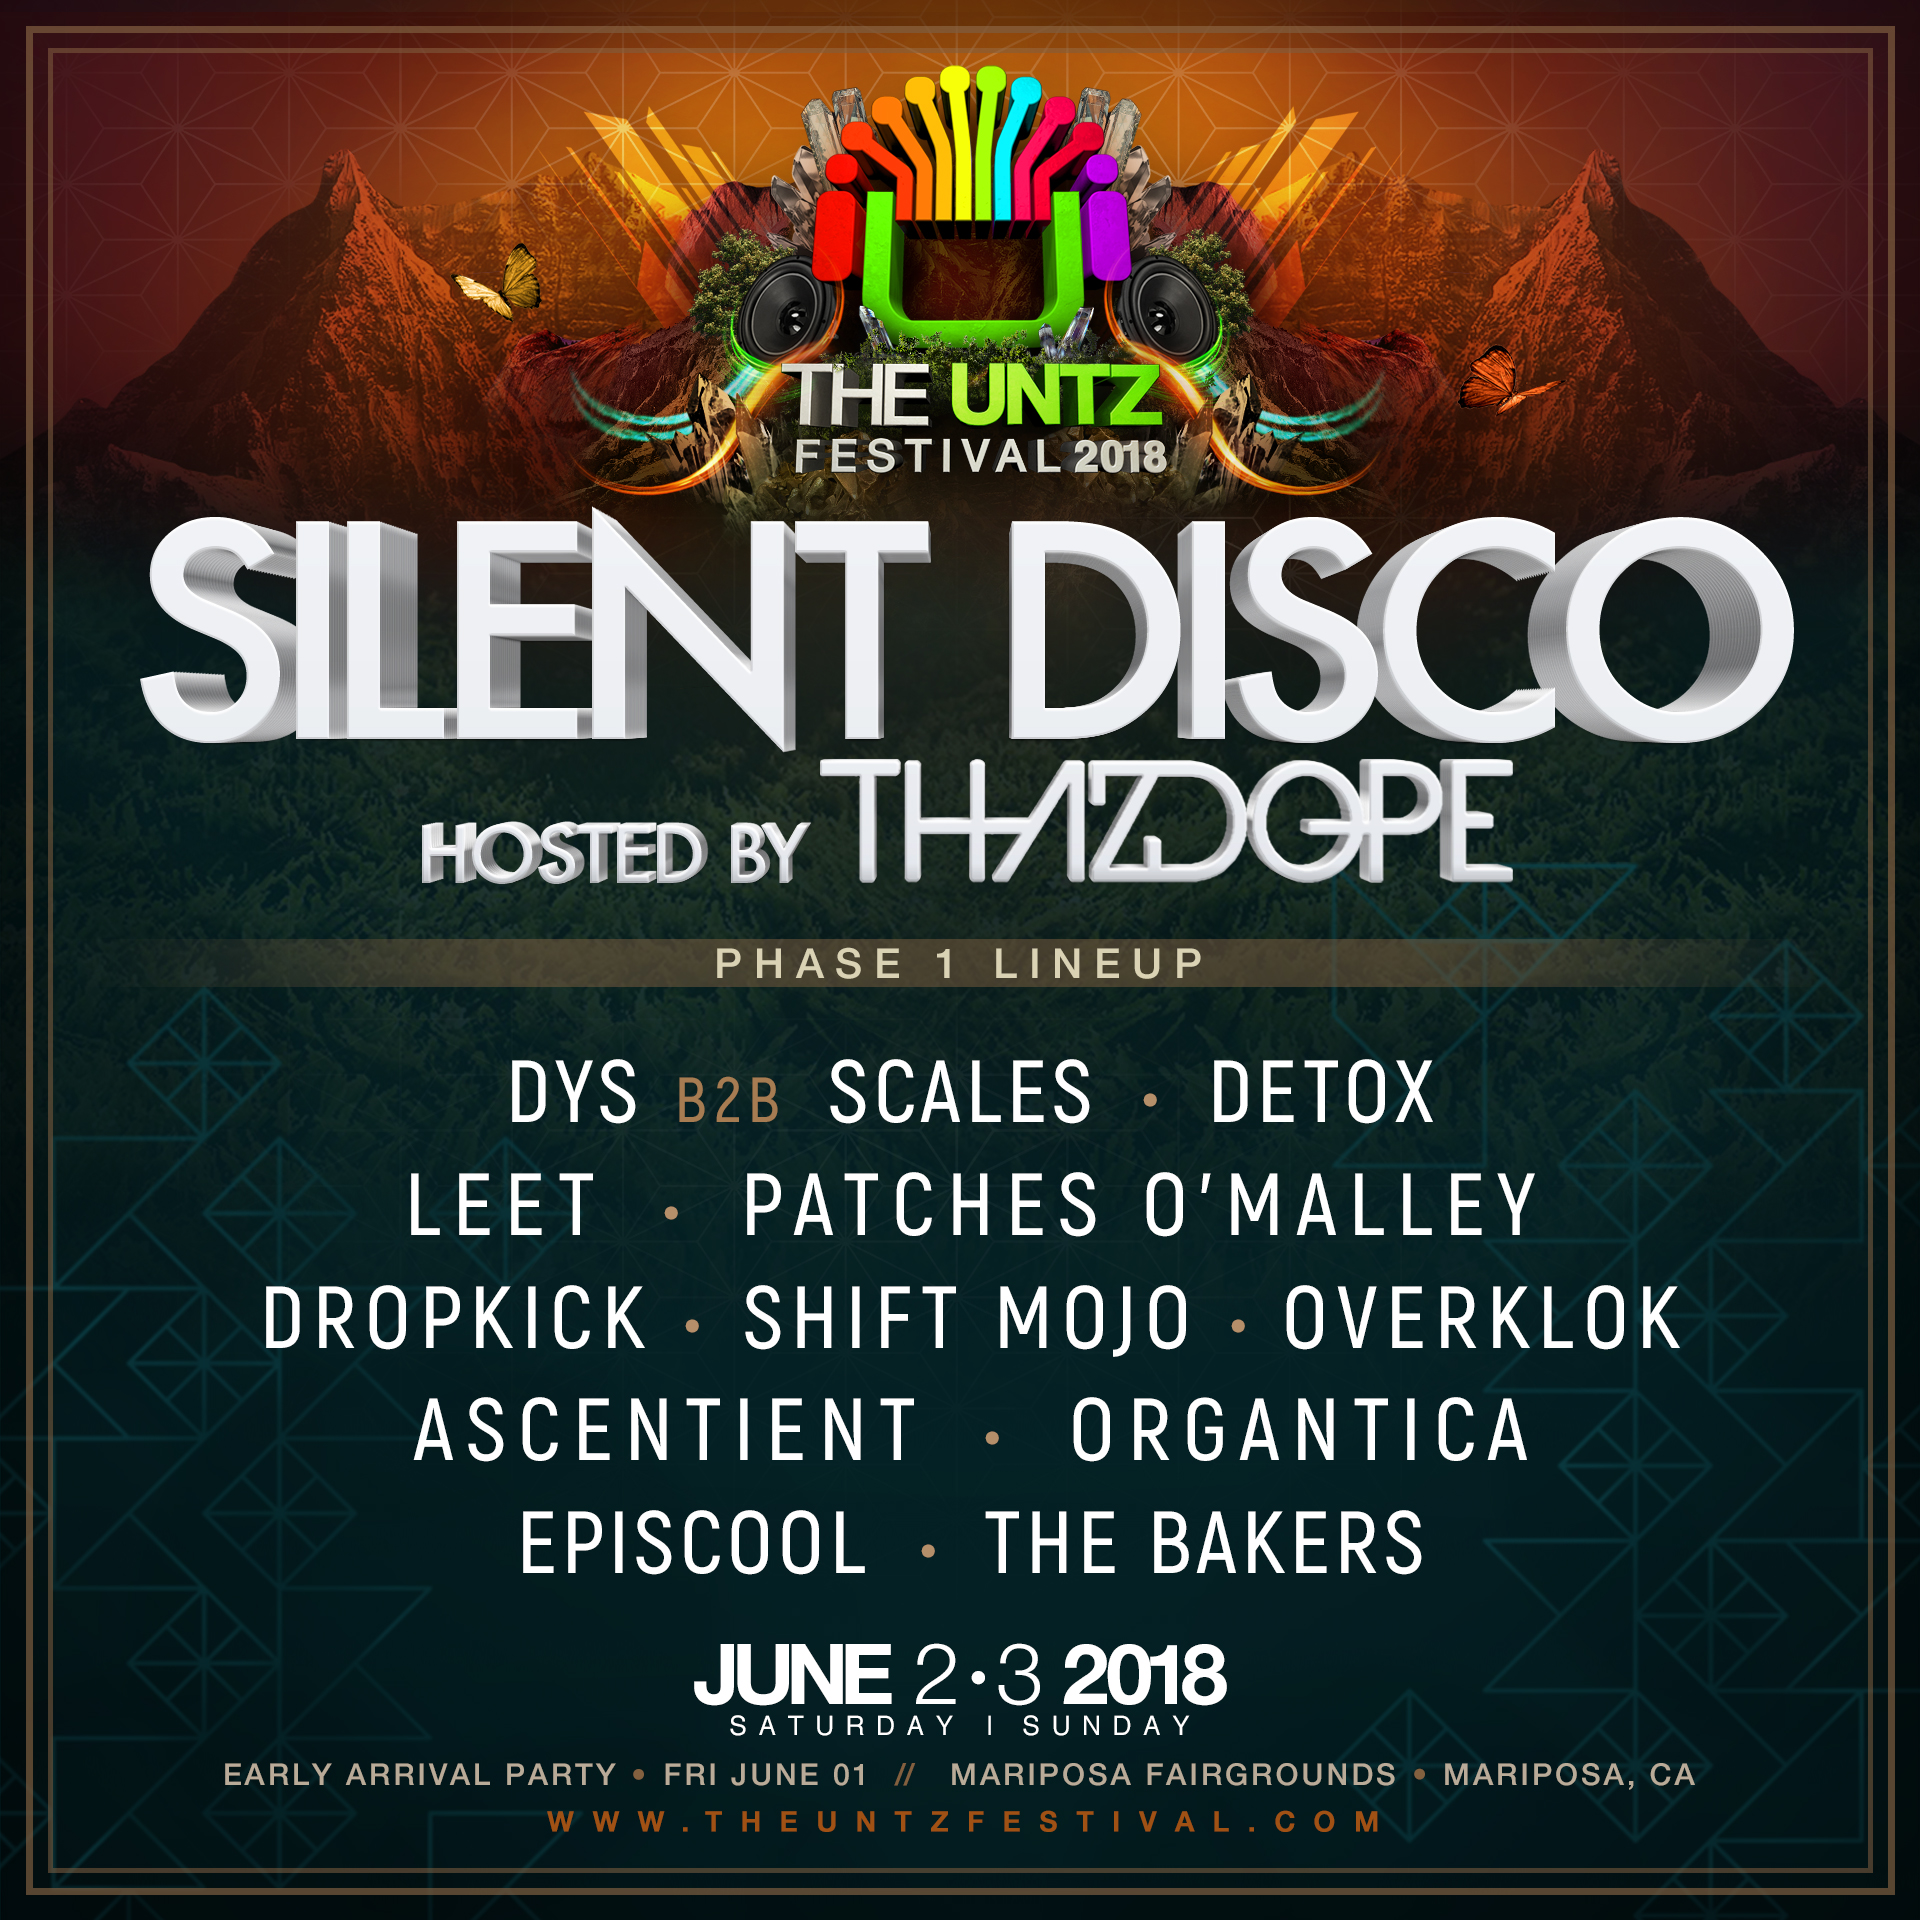 The Untz Festival 2018 Silent Disco